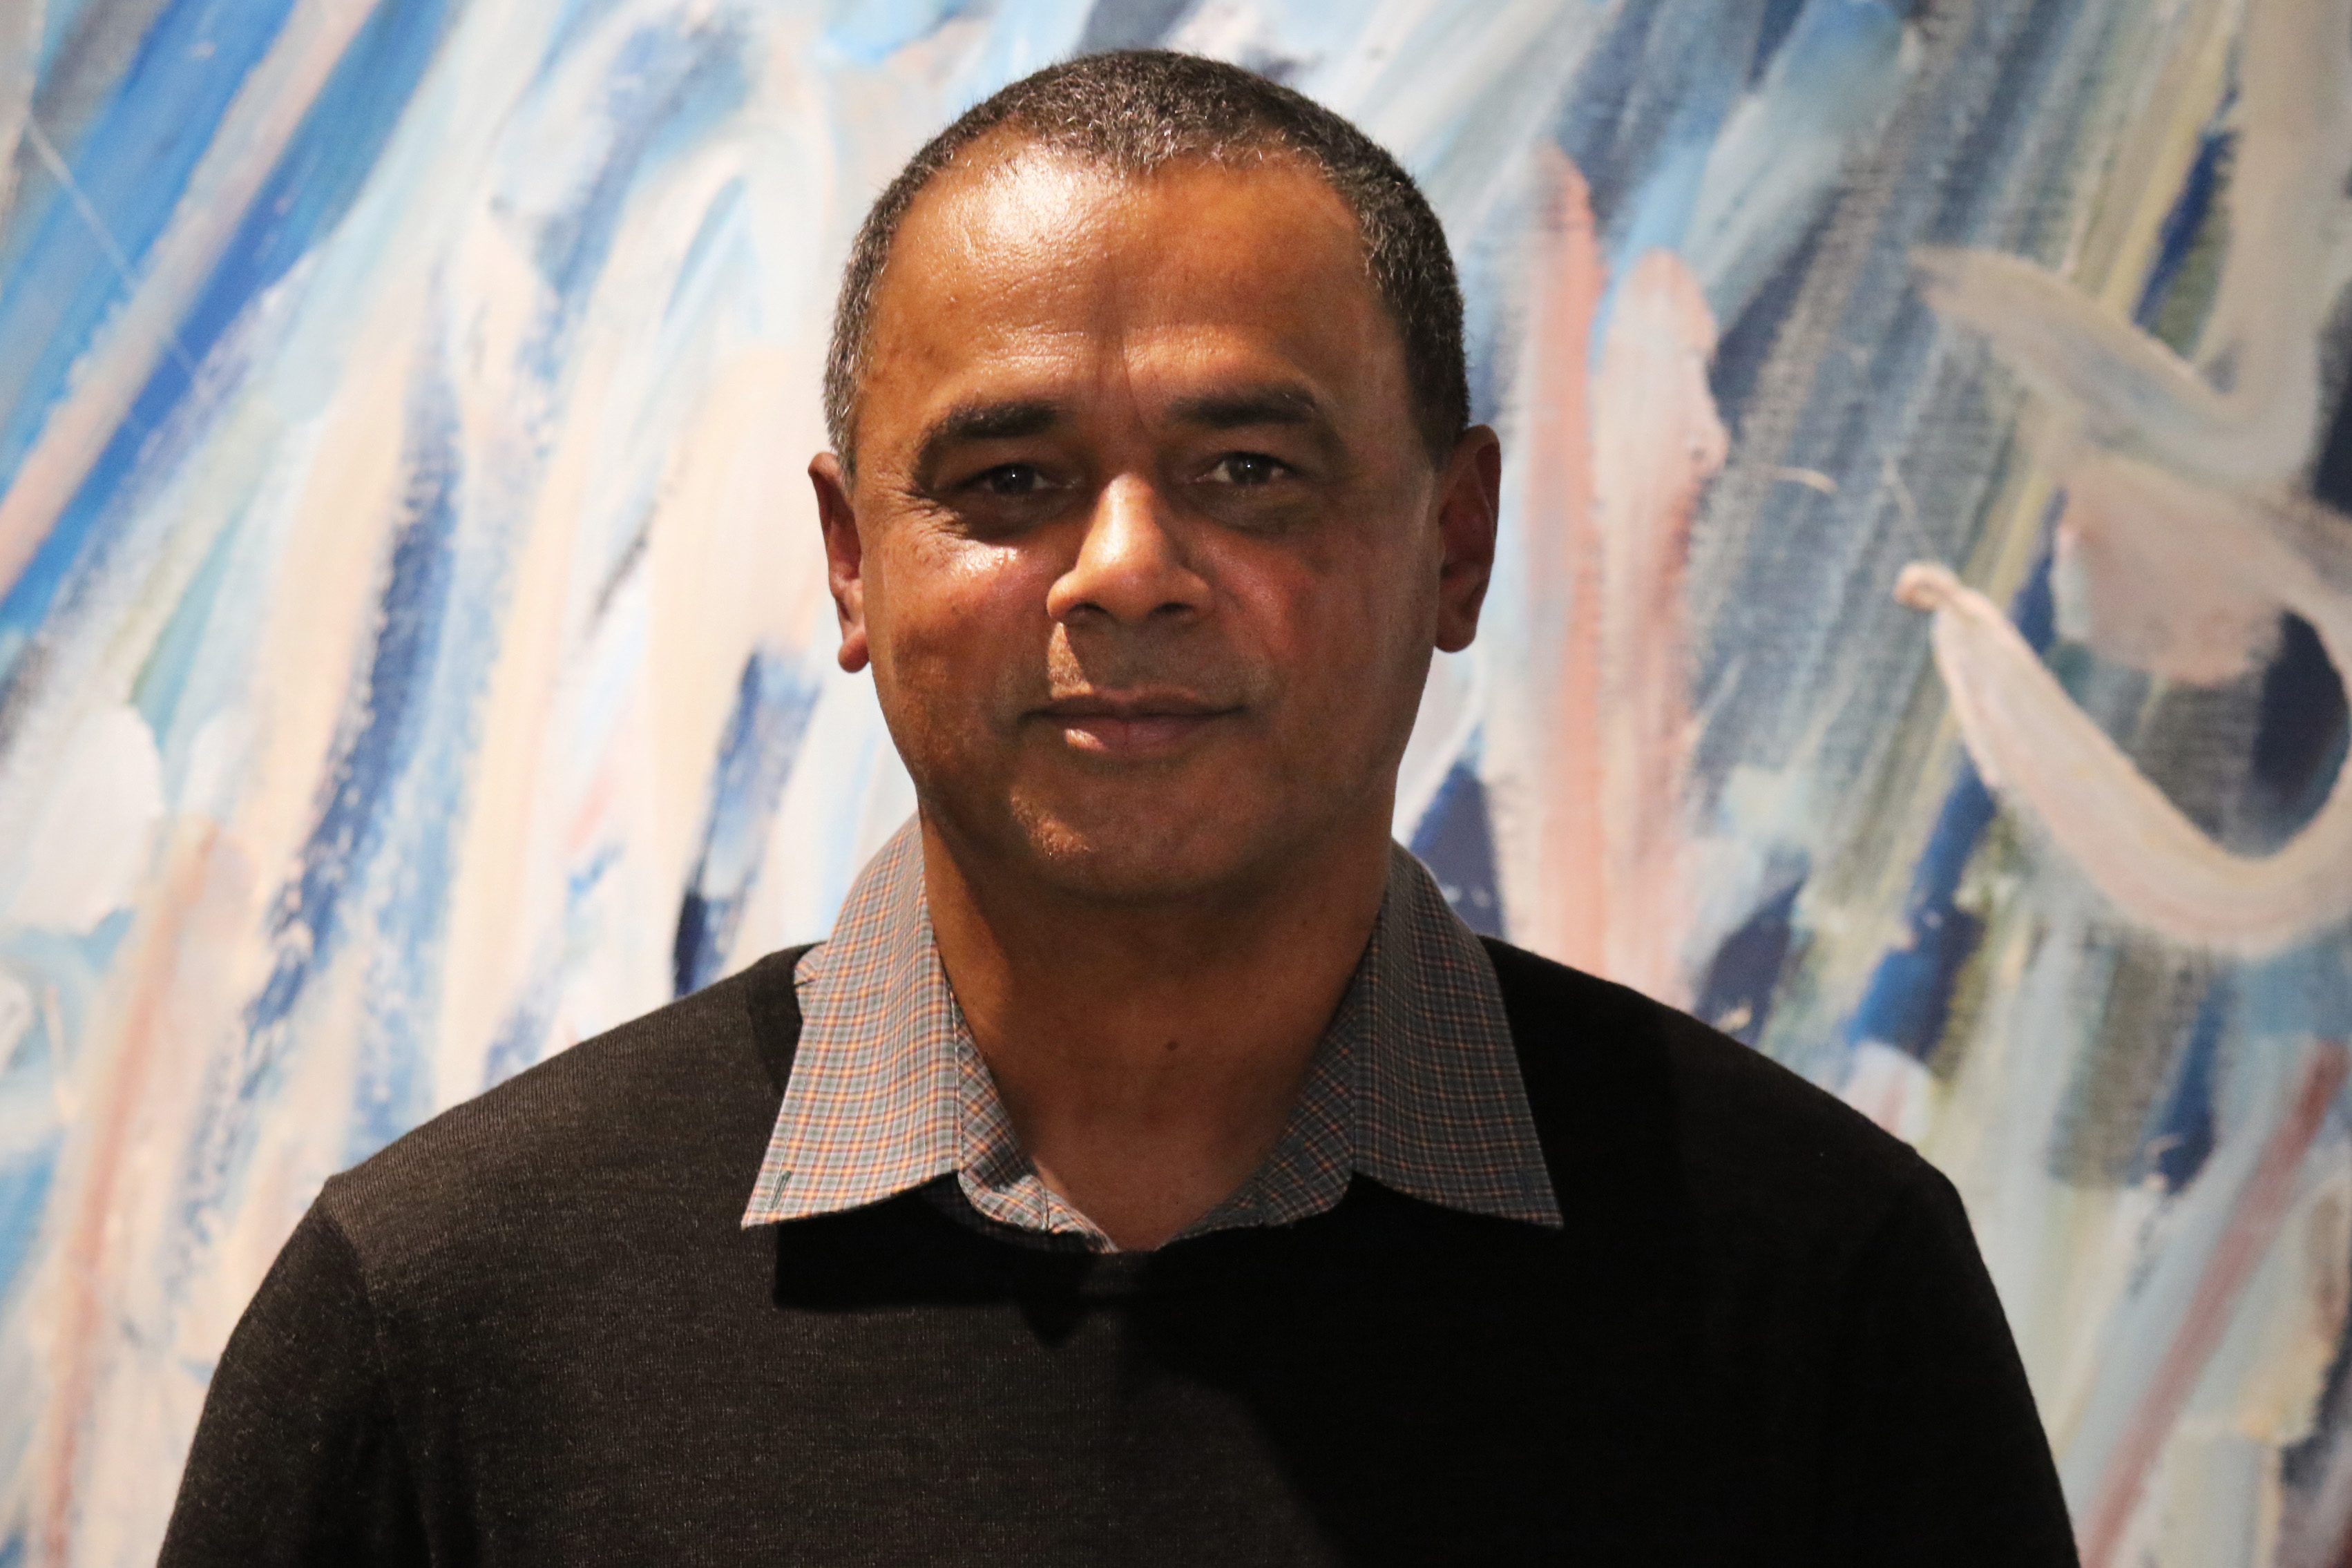 Fred Leftwich has been awarded a Roberta Sykes Indigenous Education Foundation Scholarship, and will undertake a Master of Human Rights program at the London School of Economics and Political Science. Photo: John Masiello